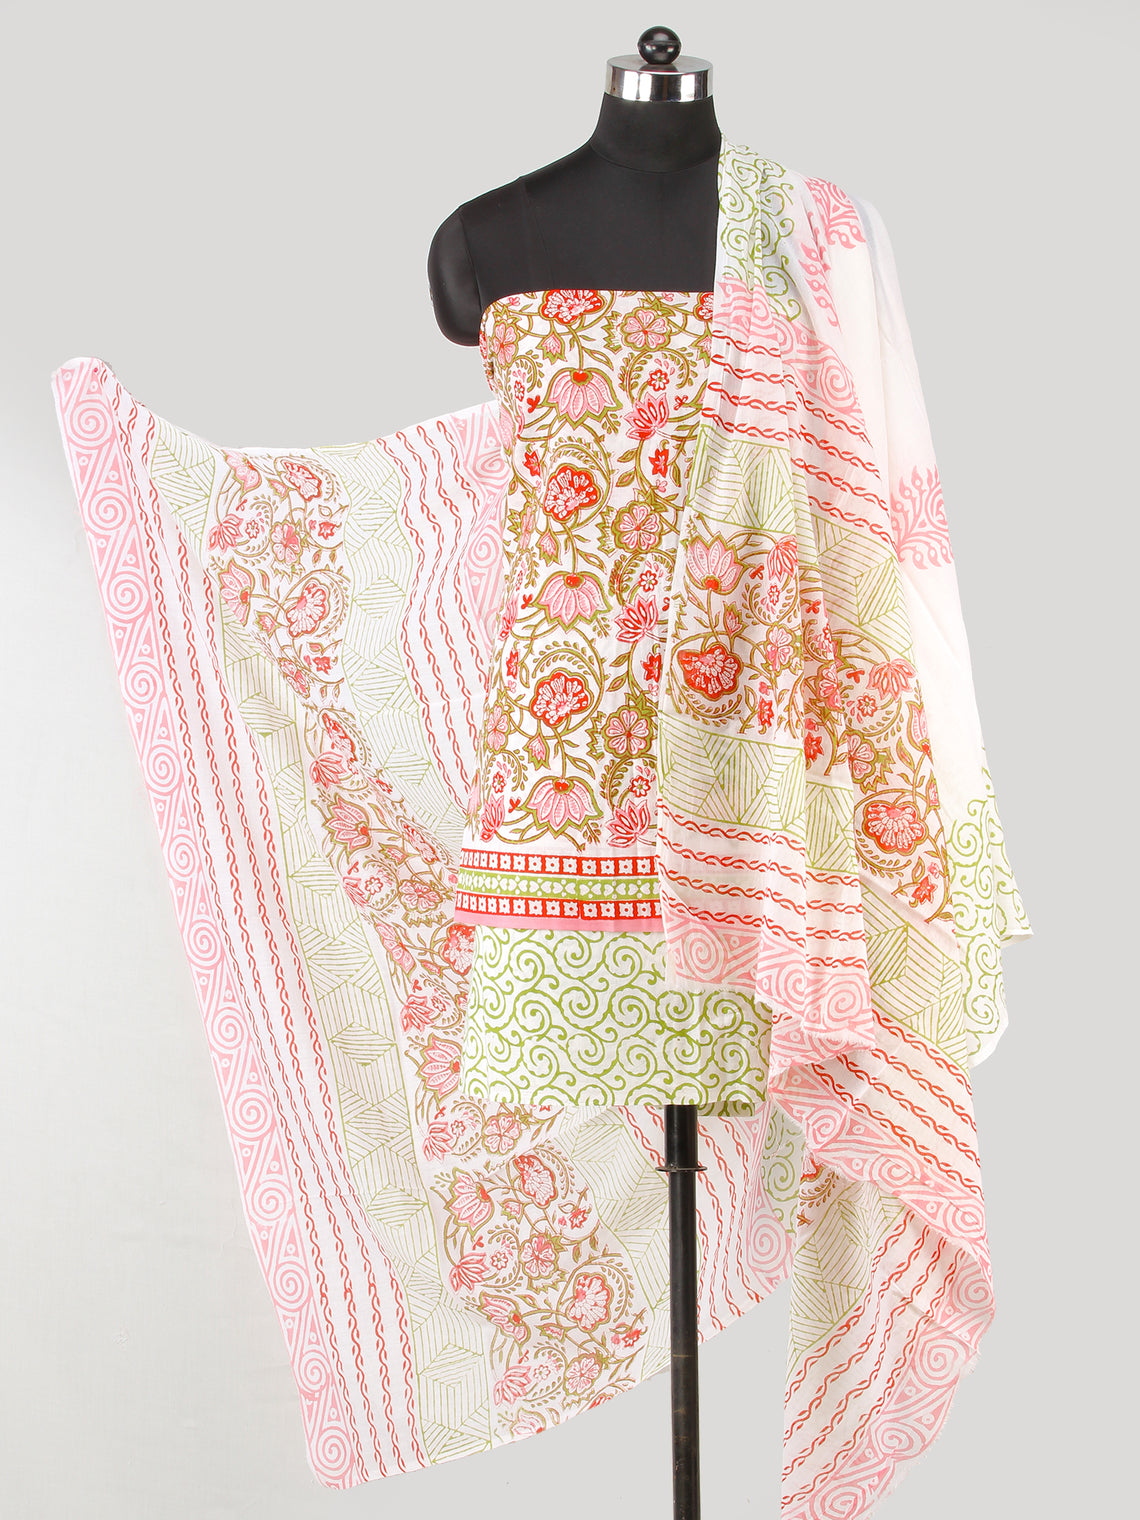 White Pink Olive Green Hand Block Printed Cotton Suit-Salwar Fabric With Cotton Dupatta (Set of 3) - SU01HB433